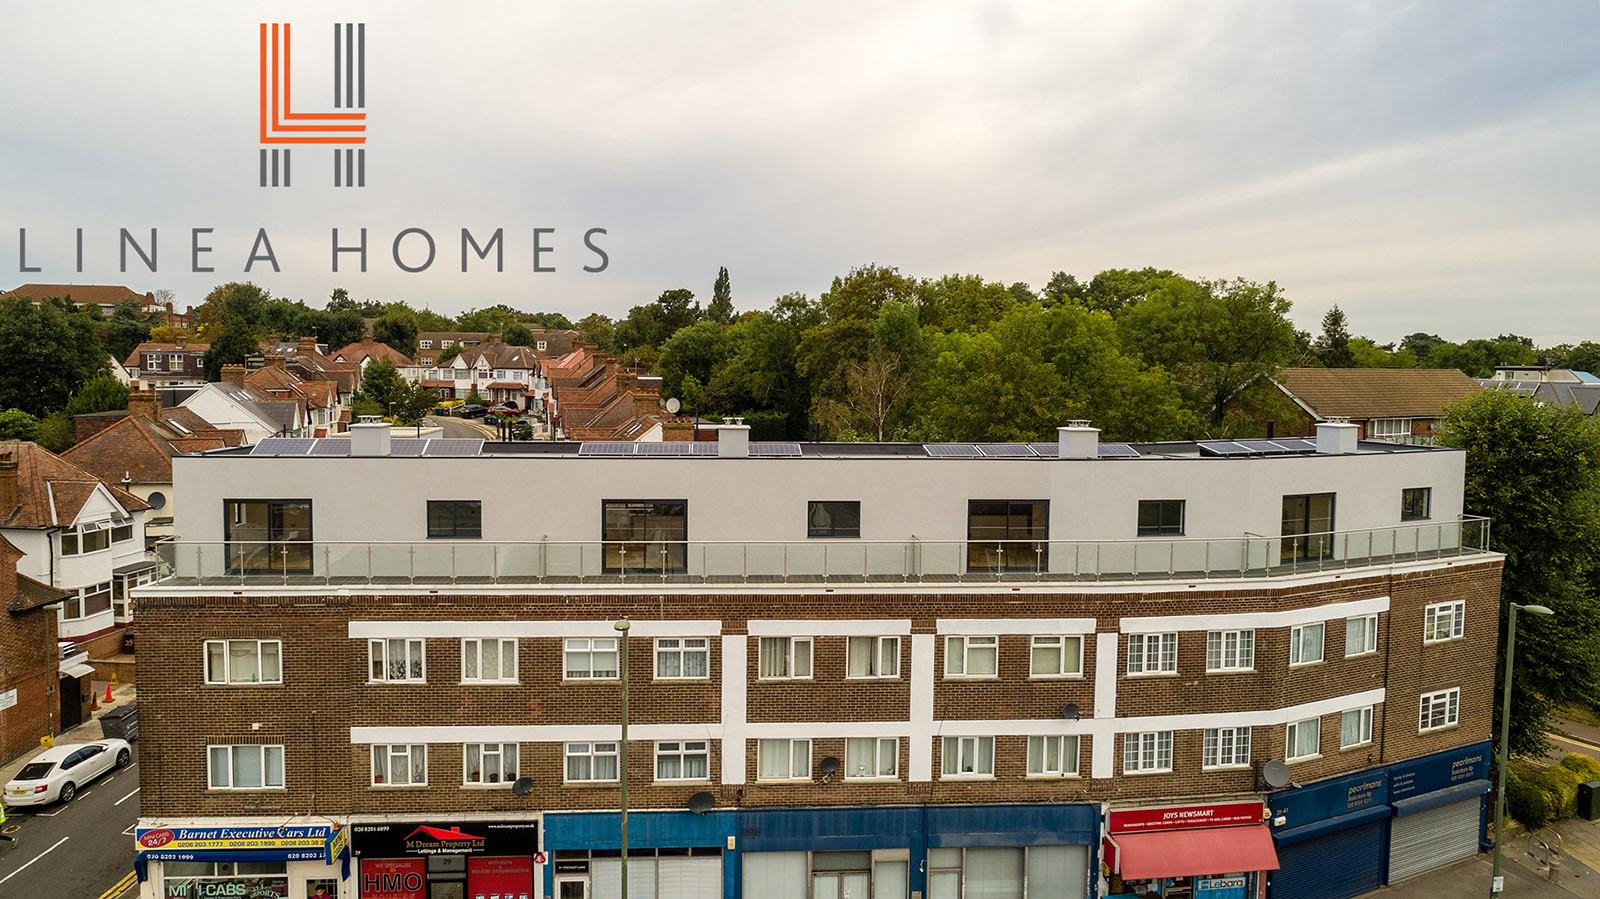 Aerial photos of flats in Hendon